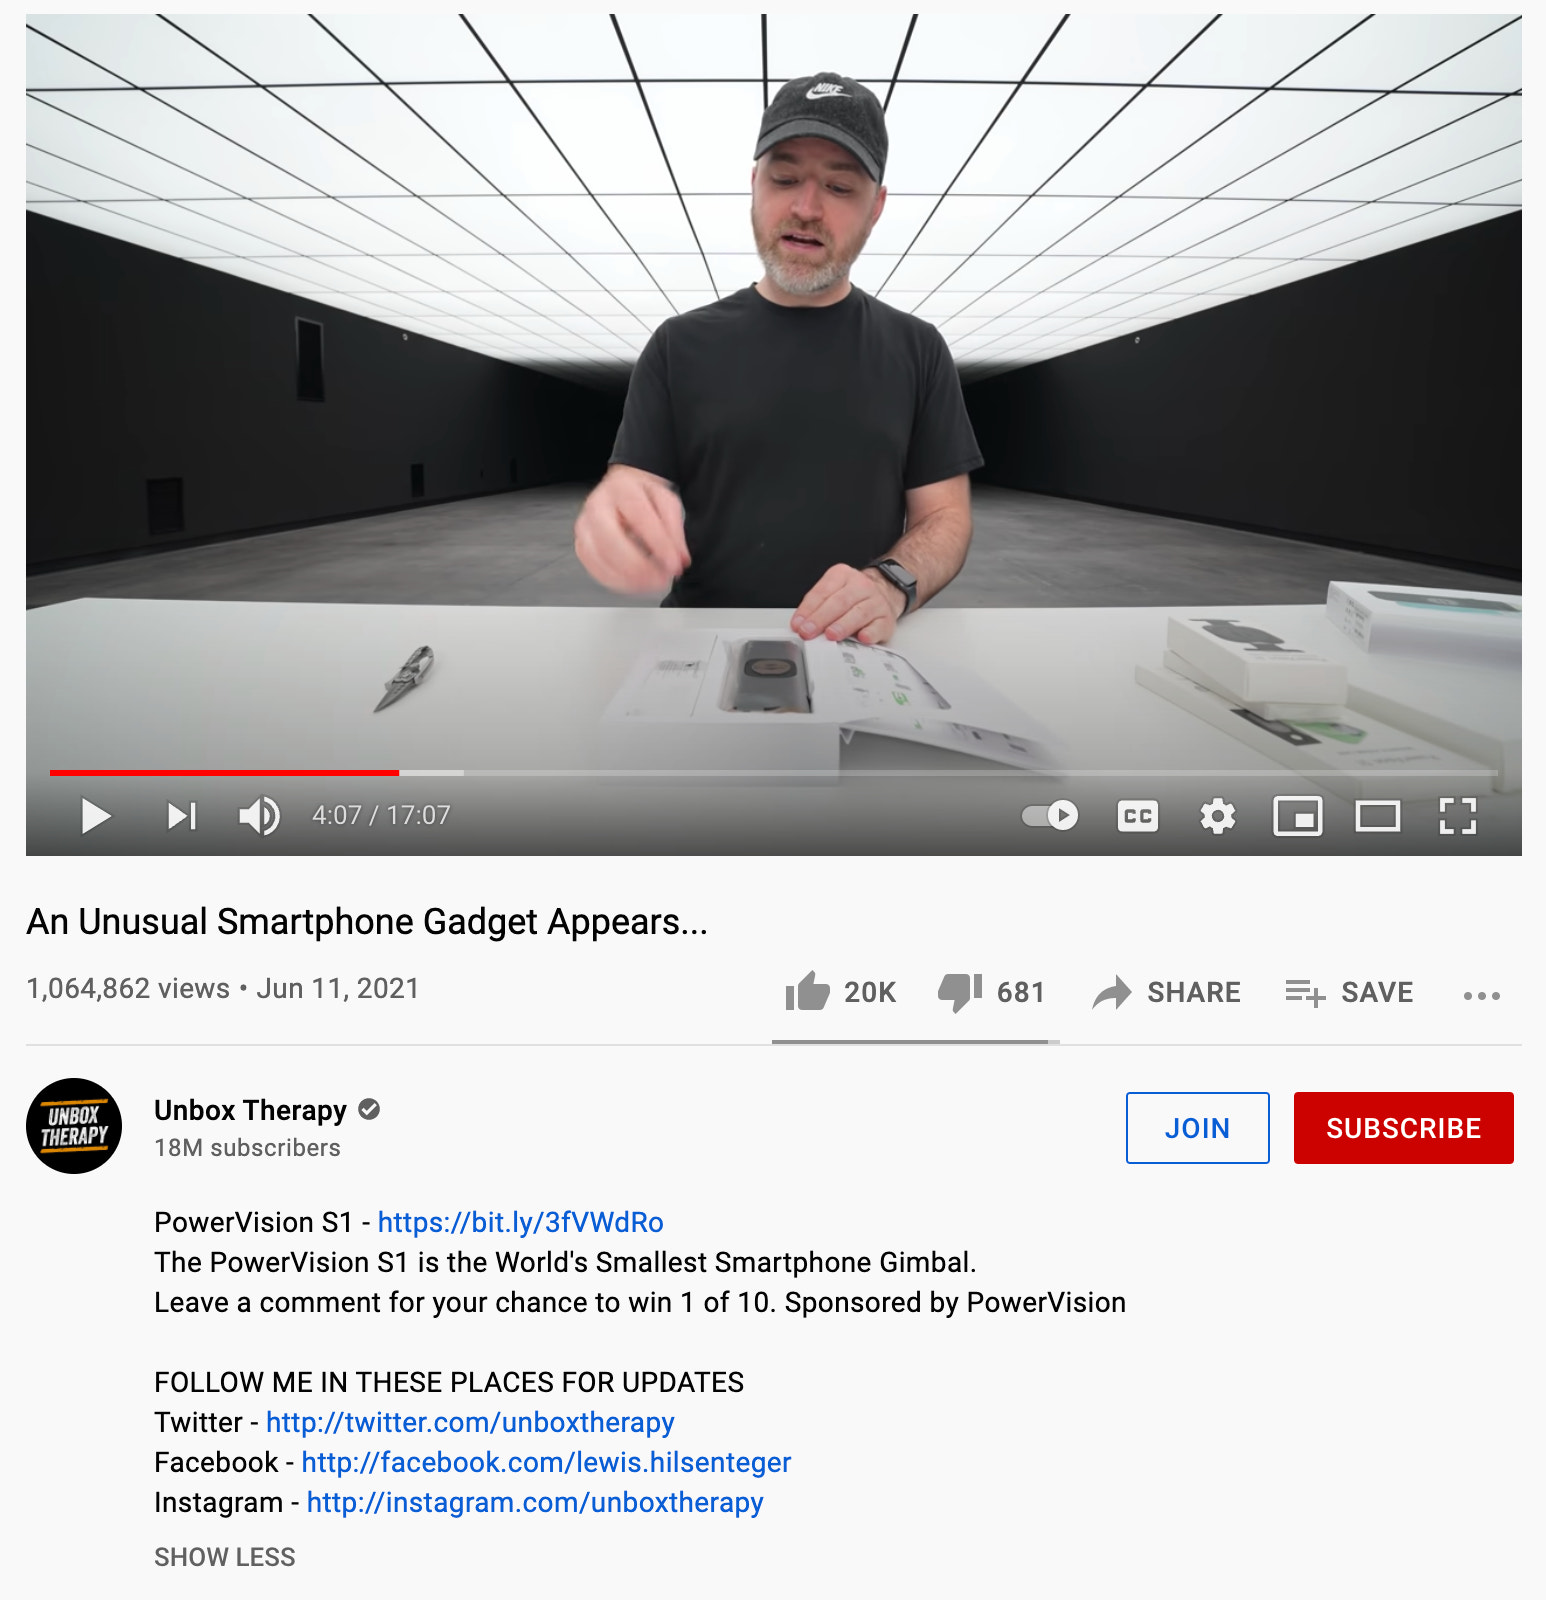 Unbox Therapy video description example